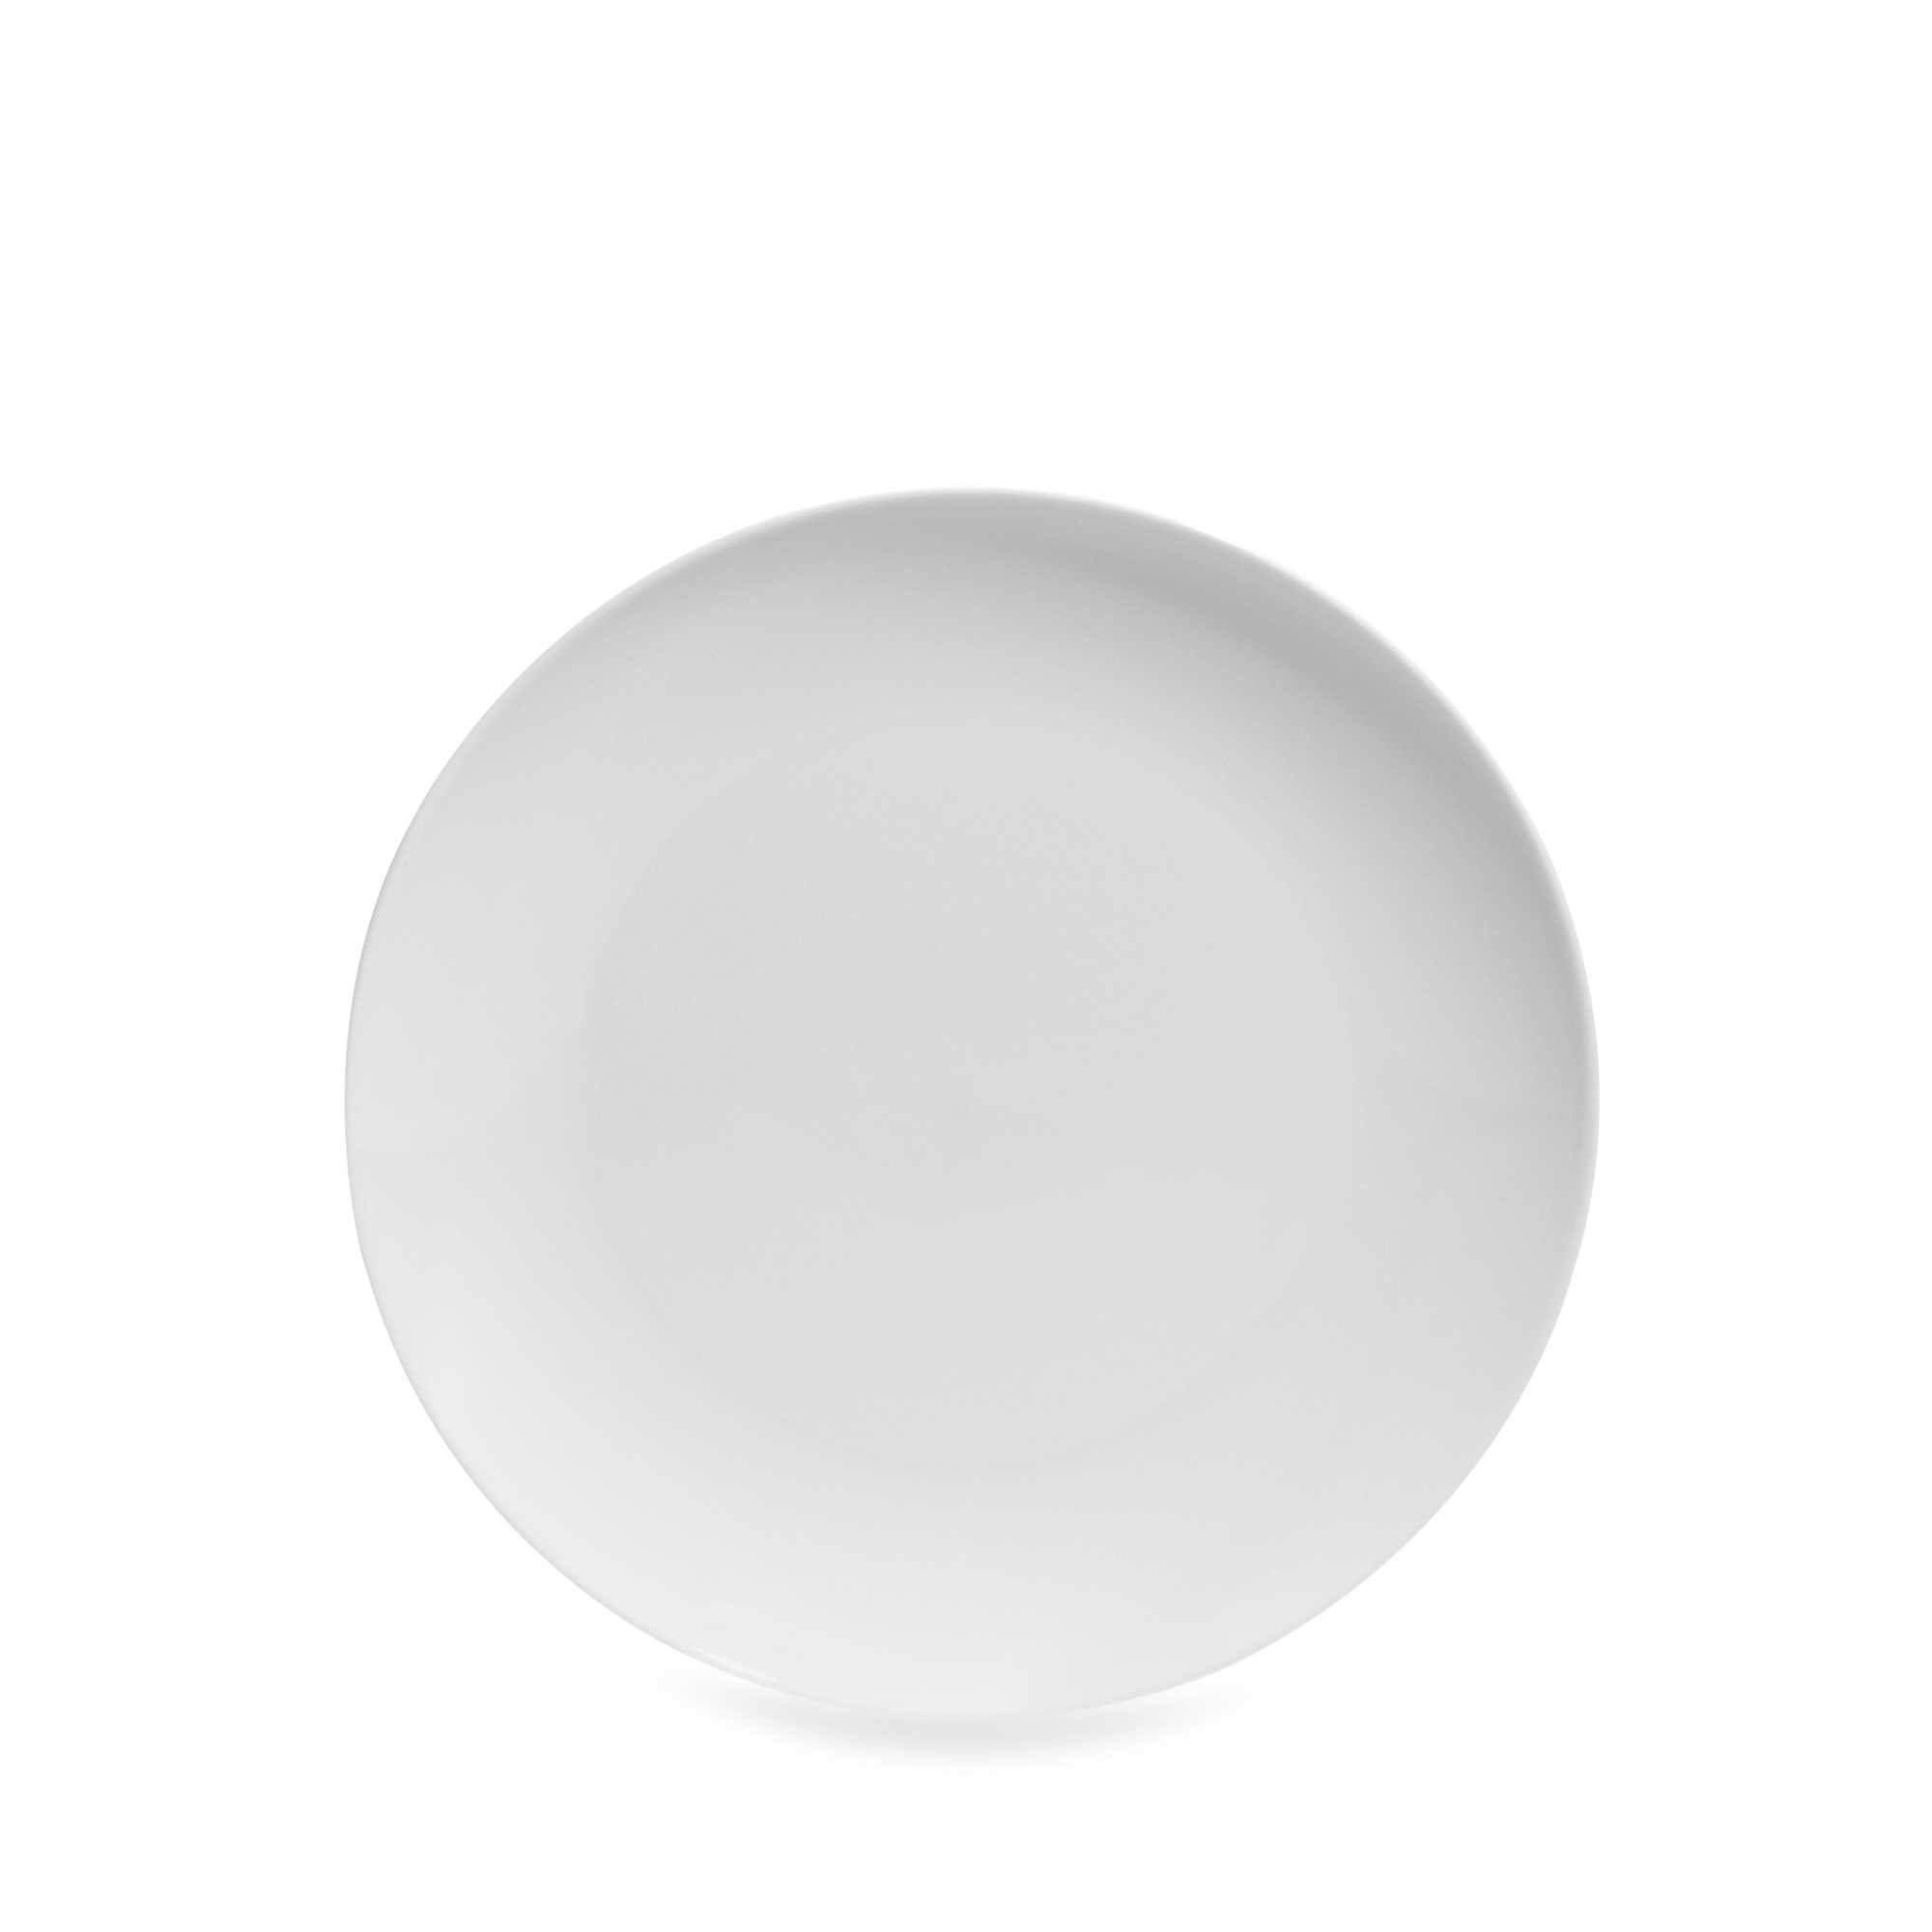 Everyday White by Fitz and Floyd Coupe Salad Plate 8in